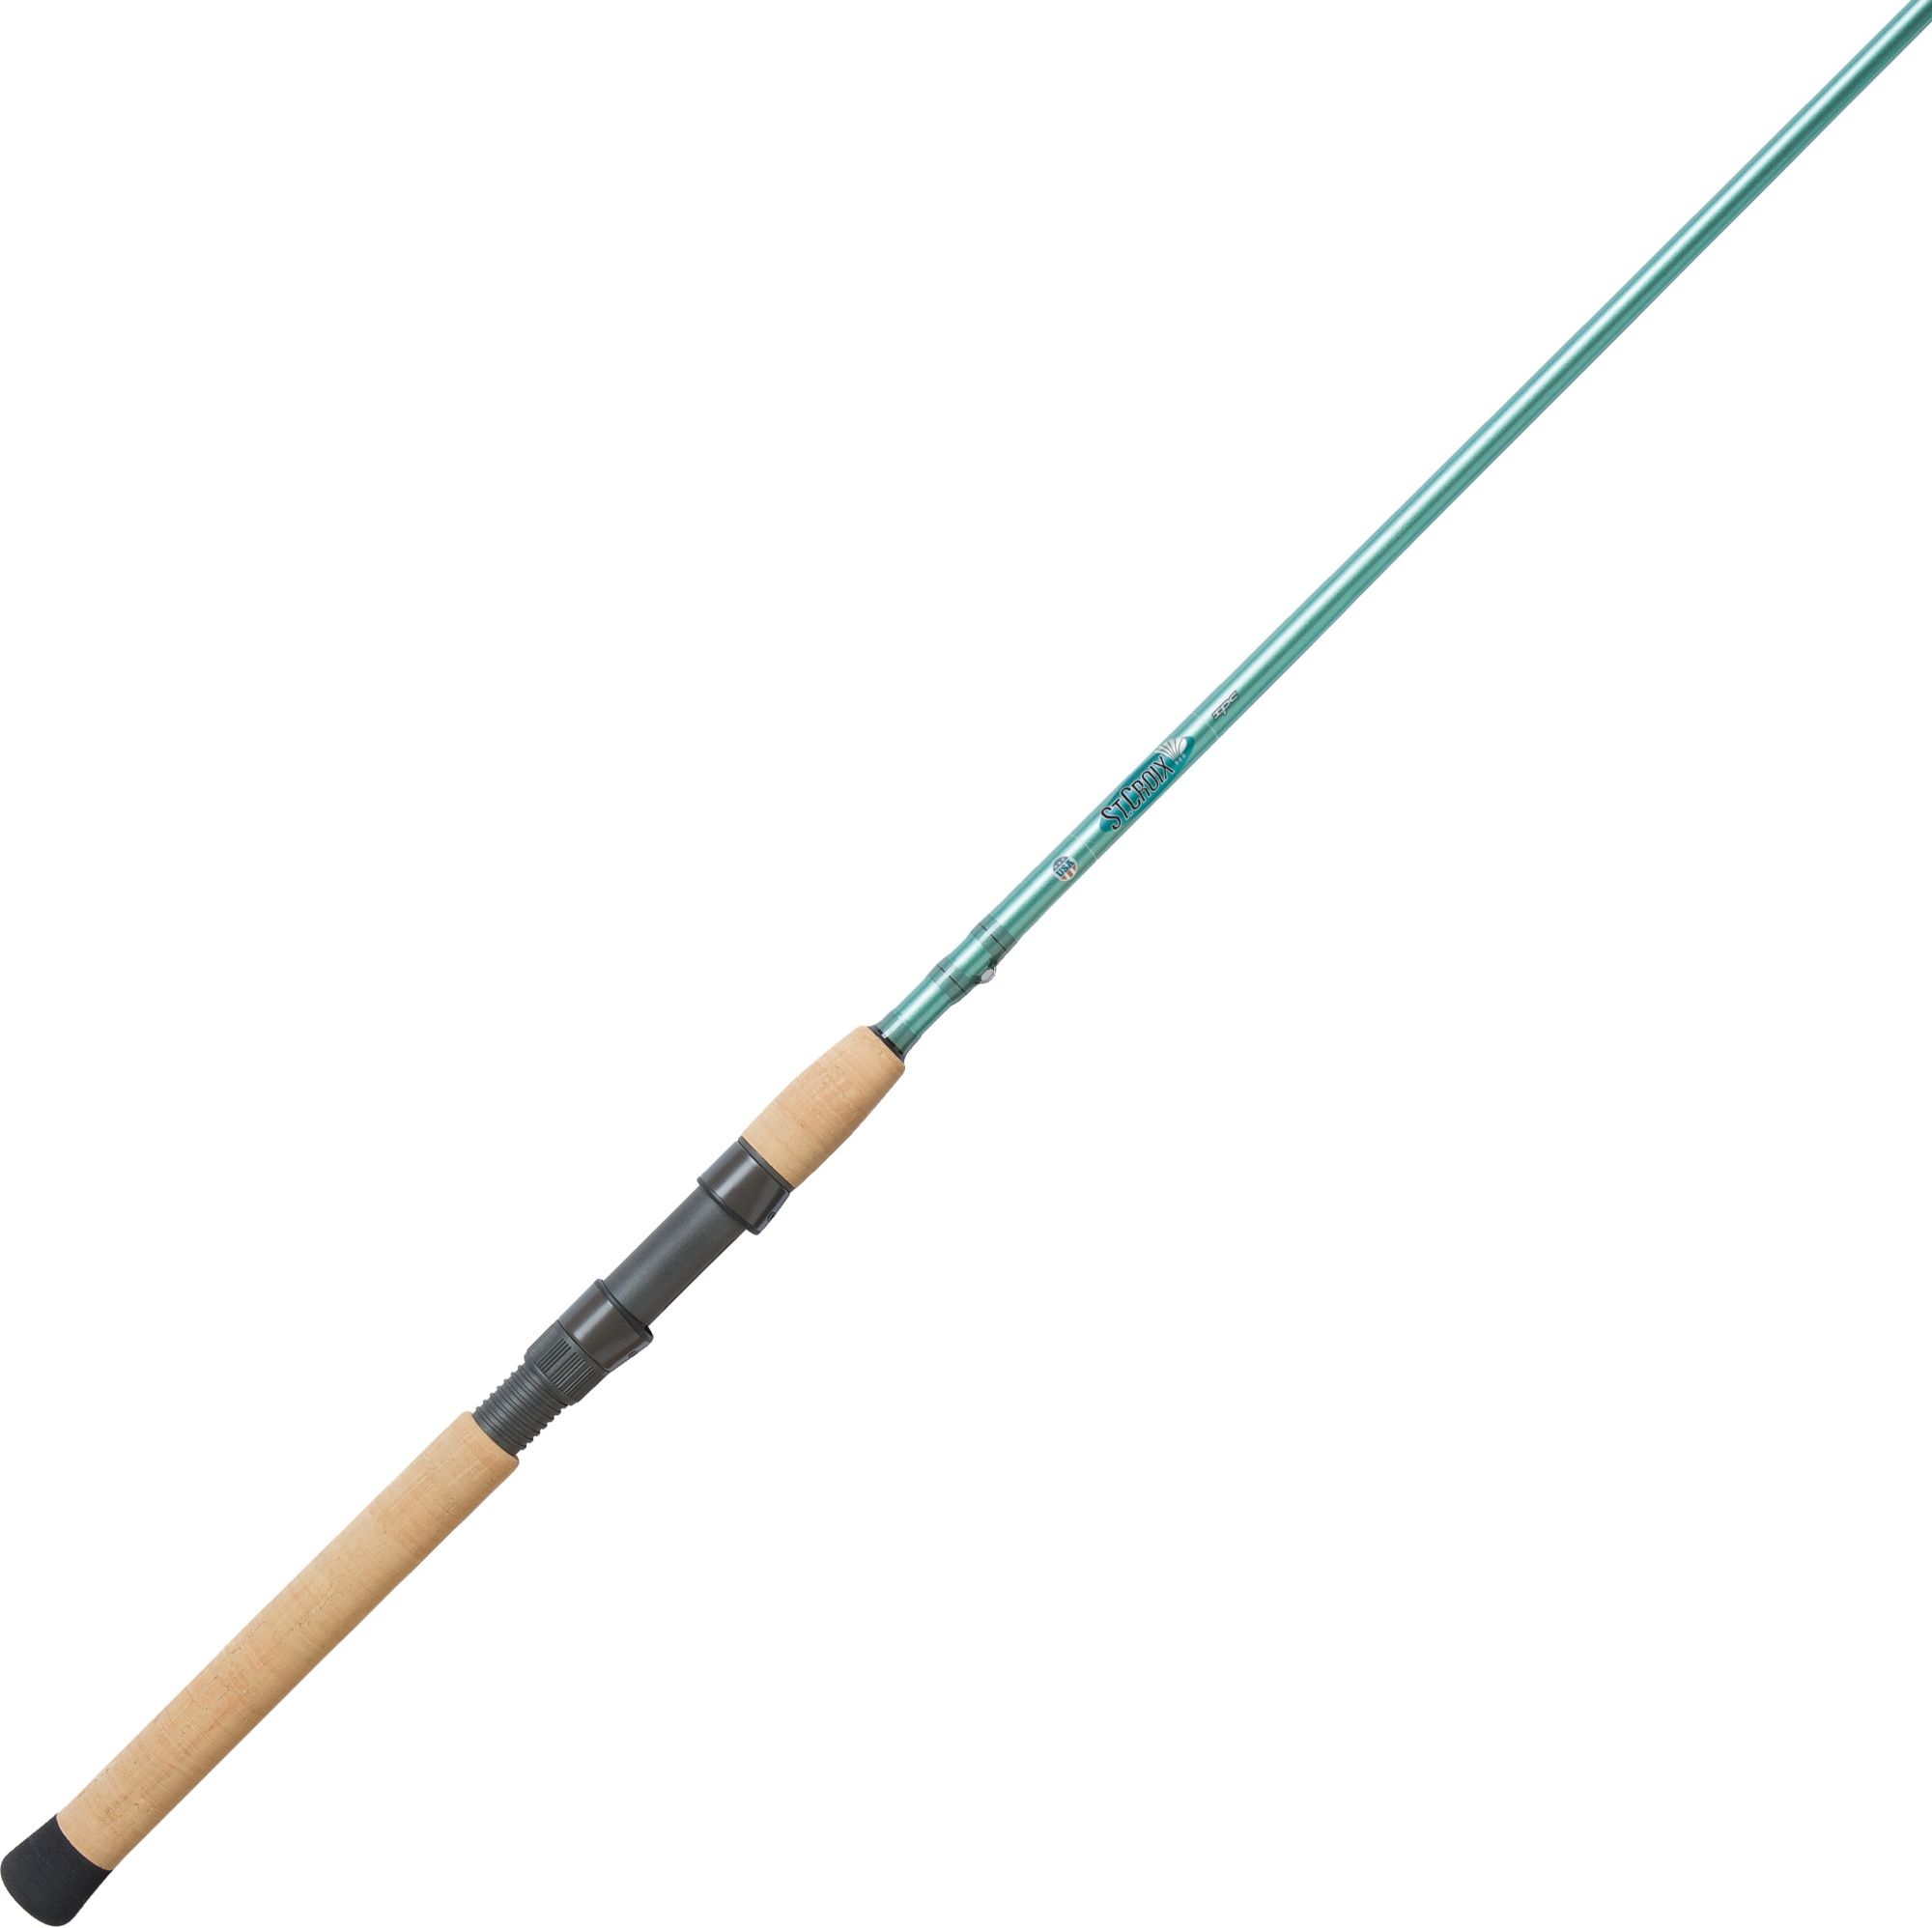 St. Croix Avid Series Inshore Spinning Rods, Size: Small thumbnail